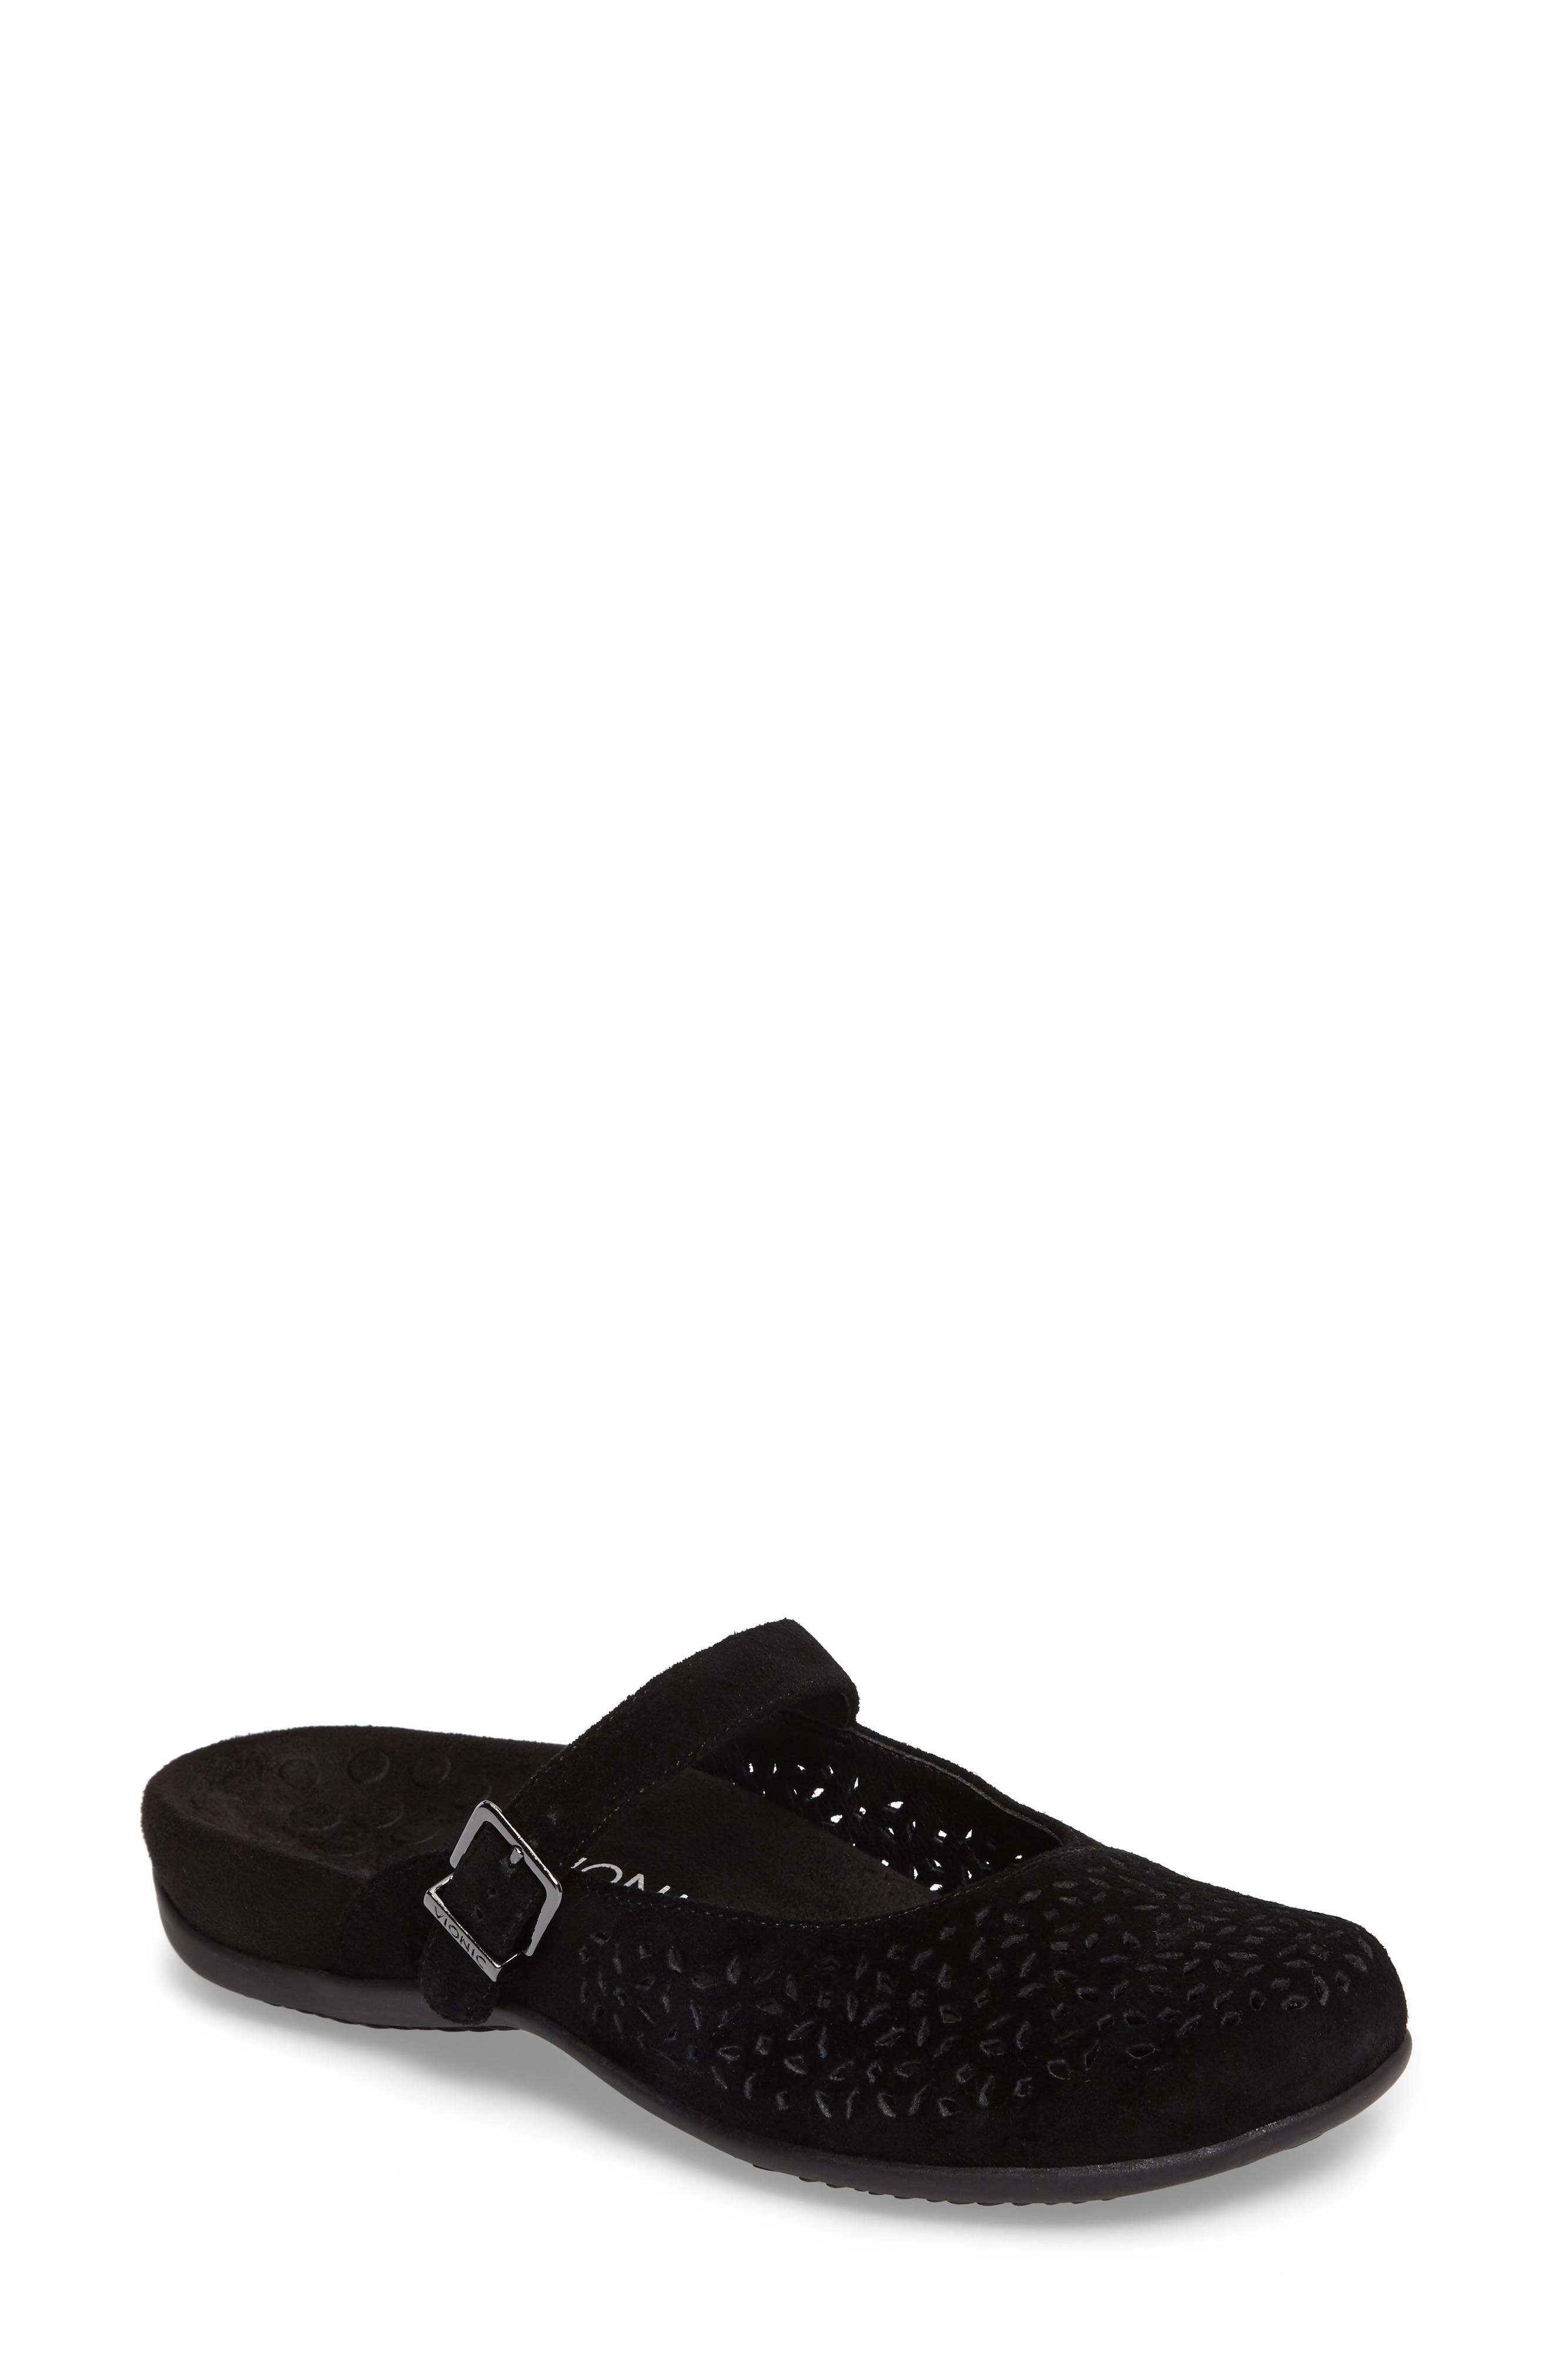 VIONIC, Rest Lidia Perforated Mary Jane Mule, Main thumbnail 1, color, BLACK SUEDE